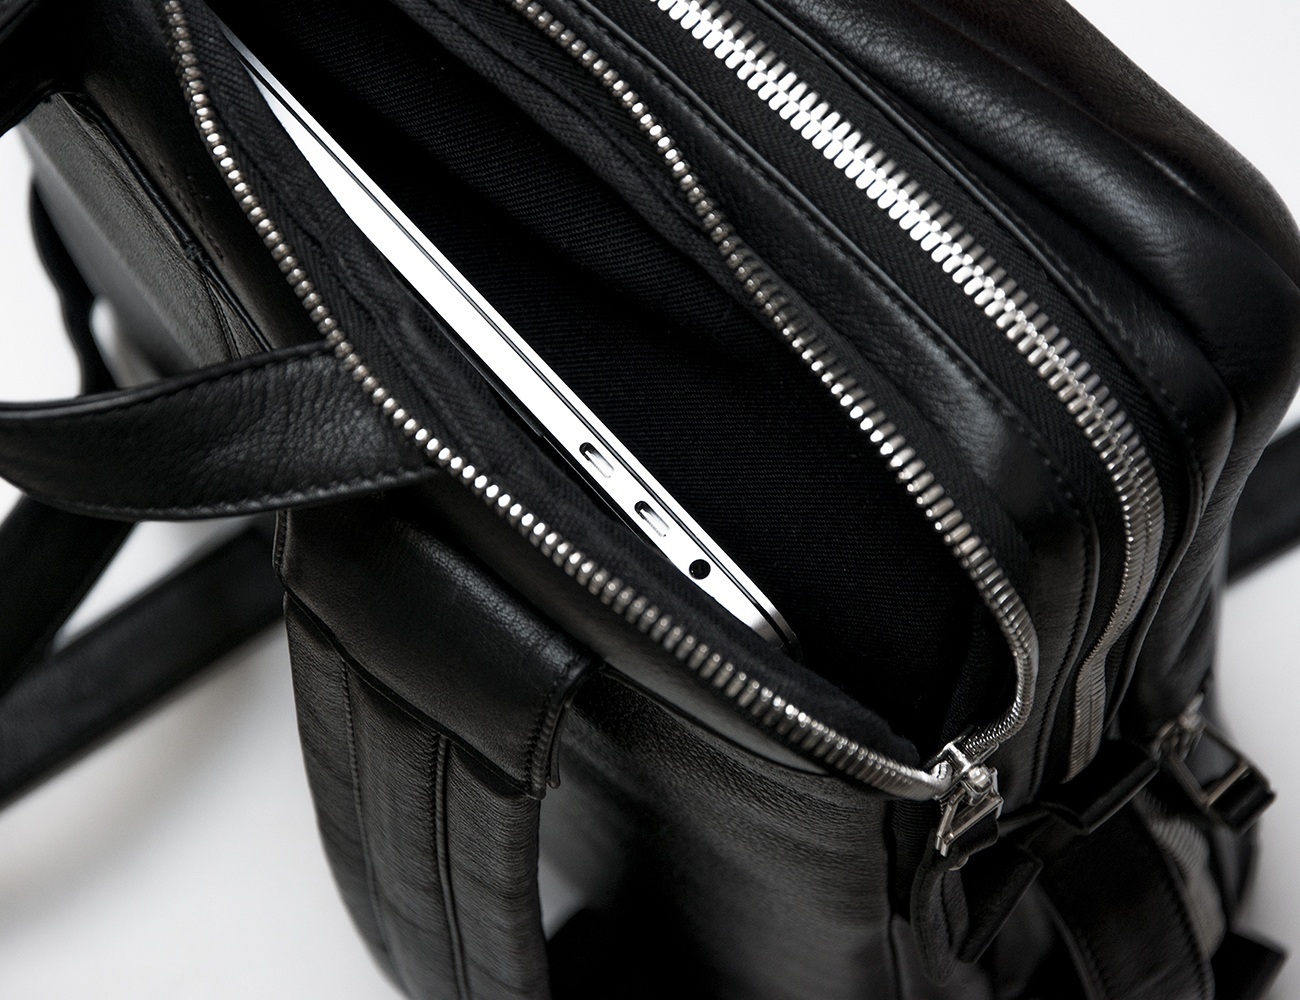 Otenteko Modern Minimalist Leather Backpacks